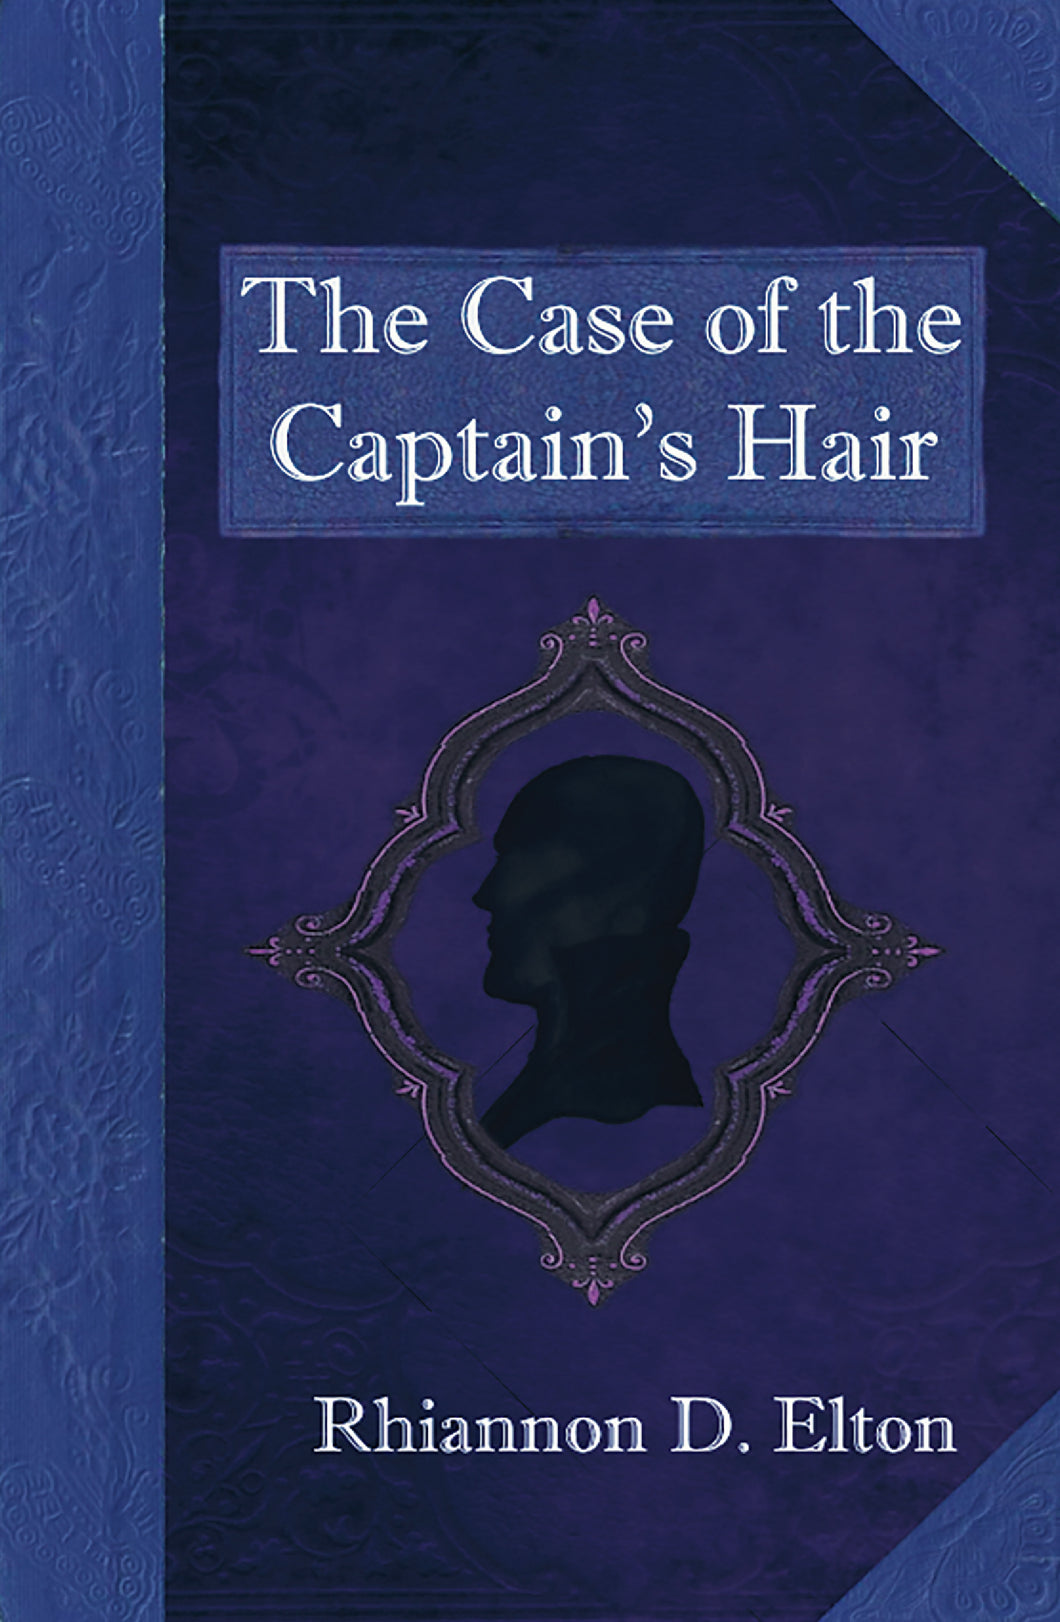 The Case of the Captain's Hair